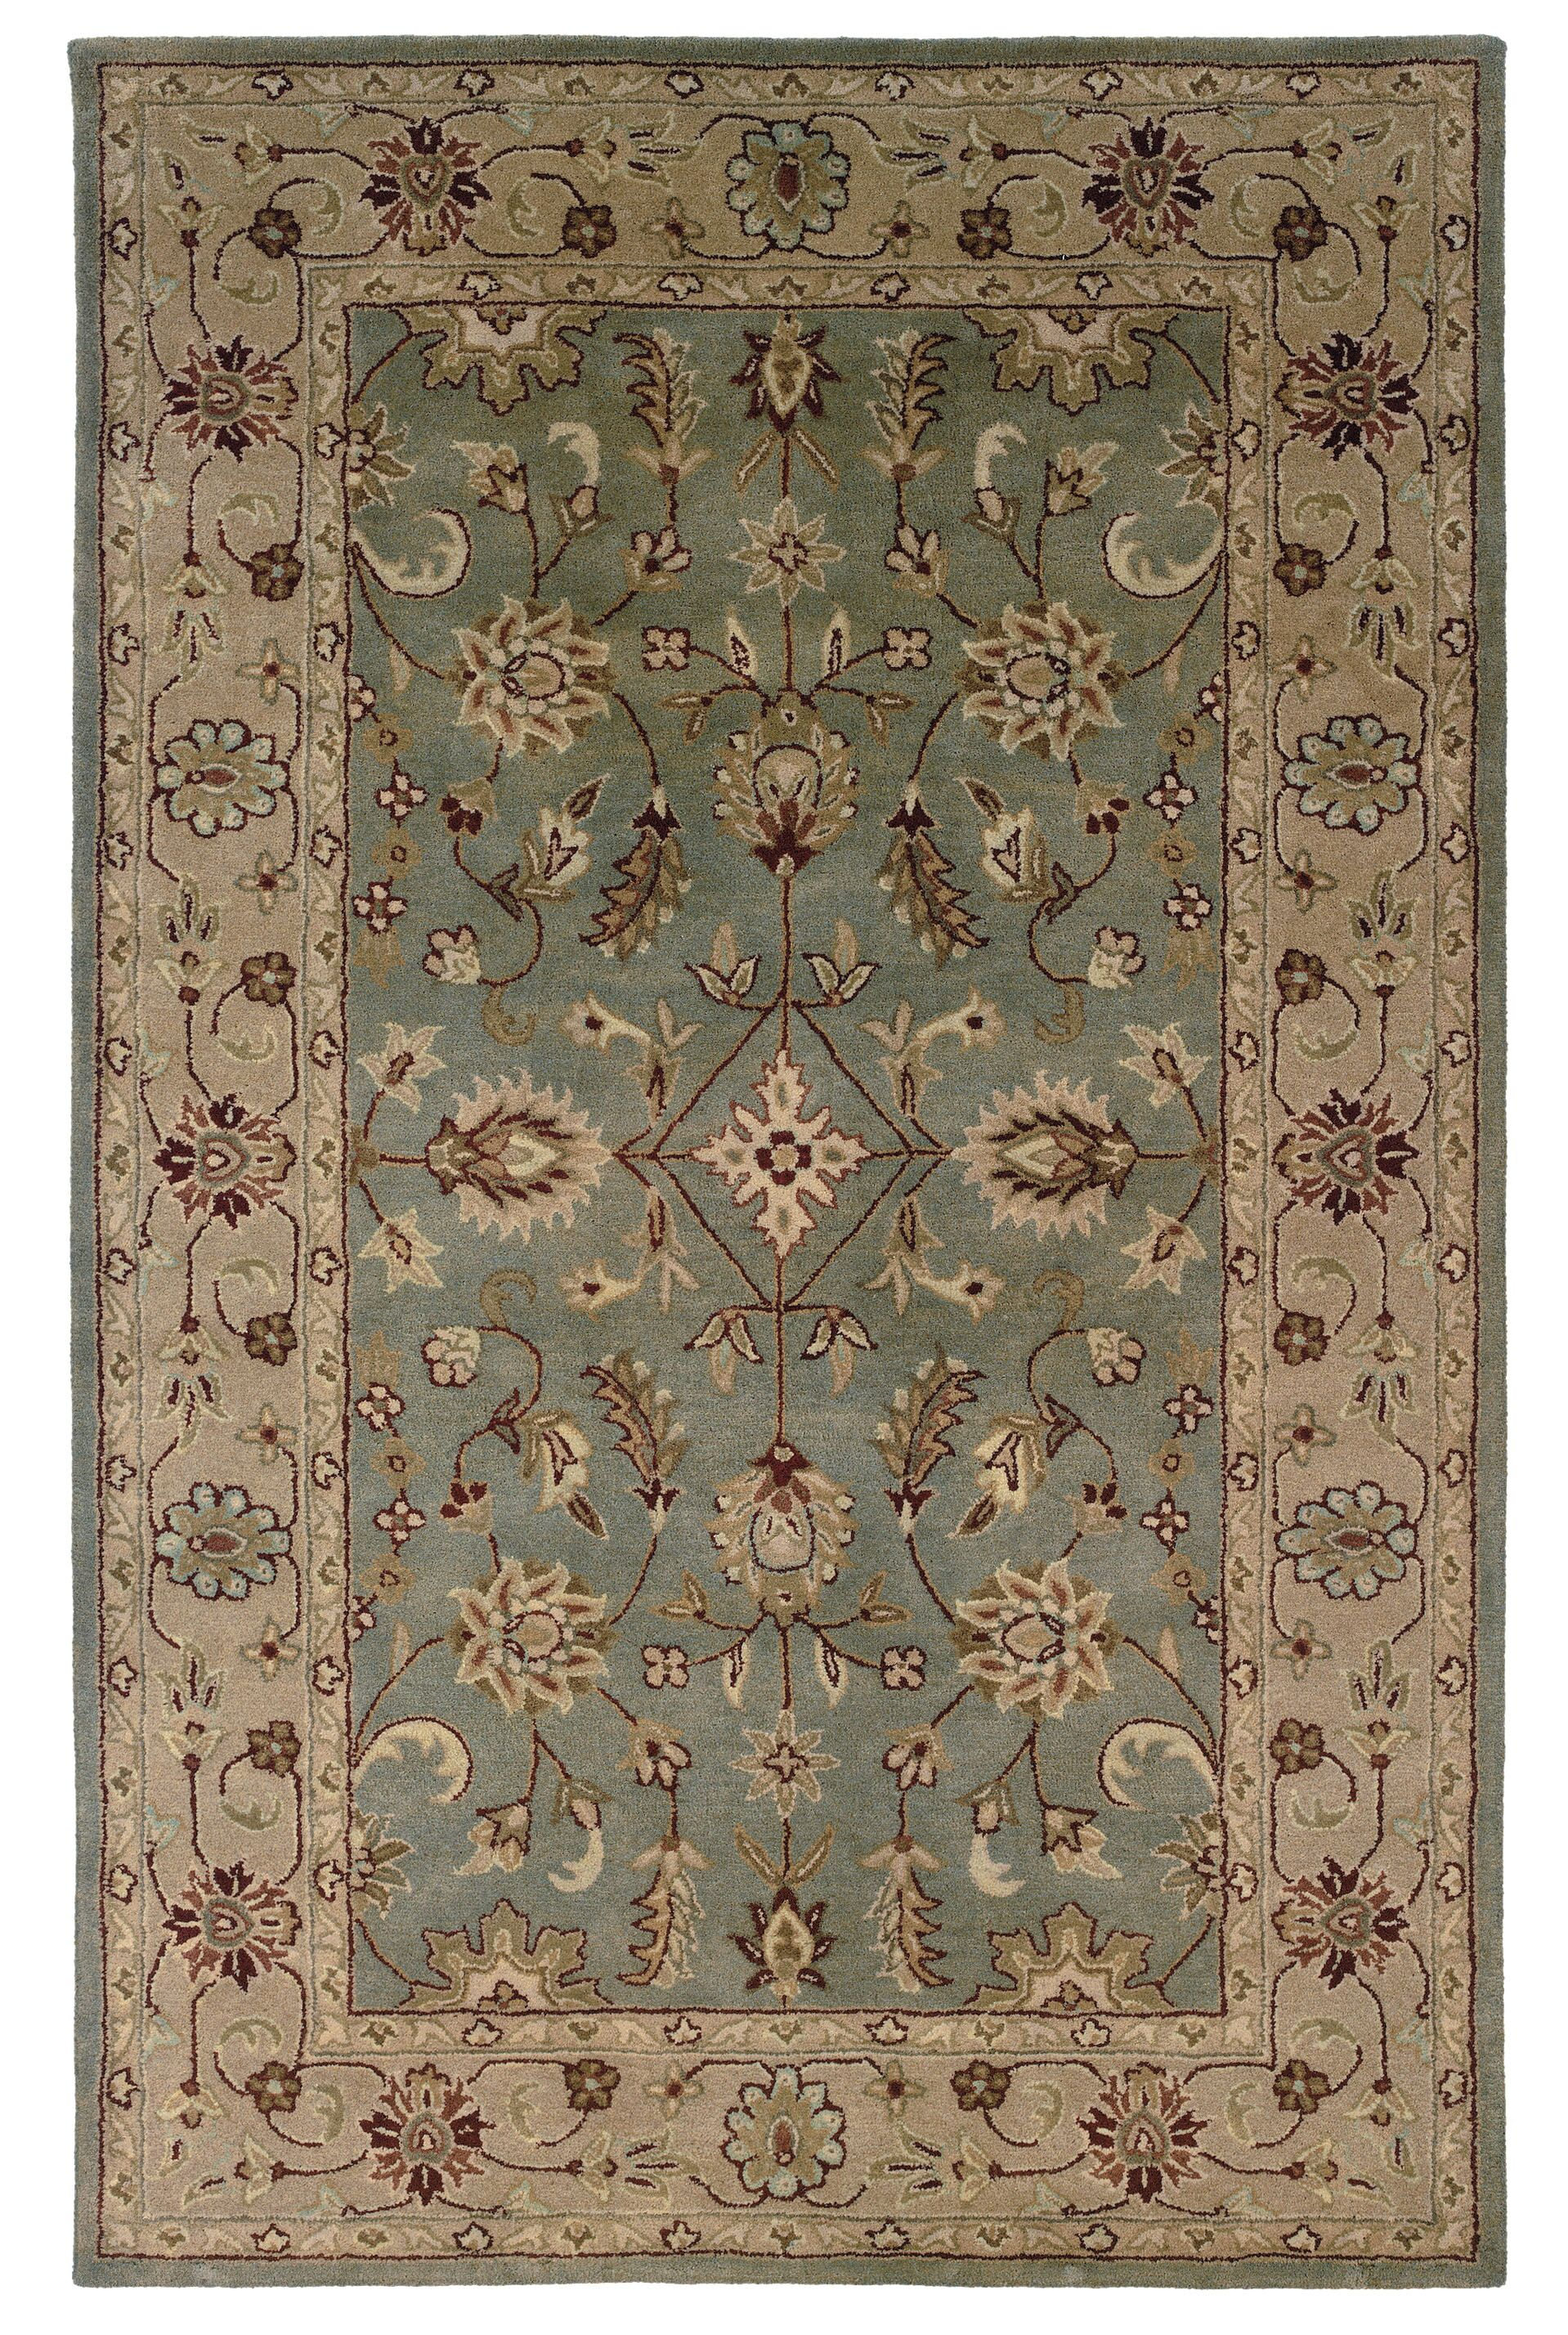 Gattis Hand-Tufted Gray/Beige Area Rug Rug Size: Rectangle 8' x 10'